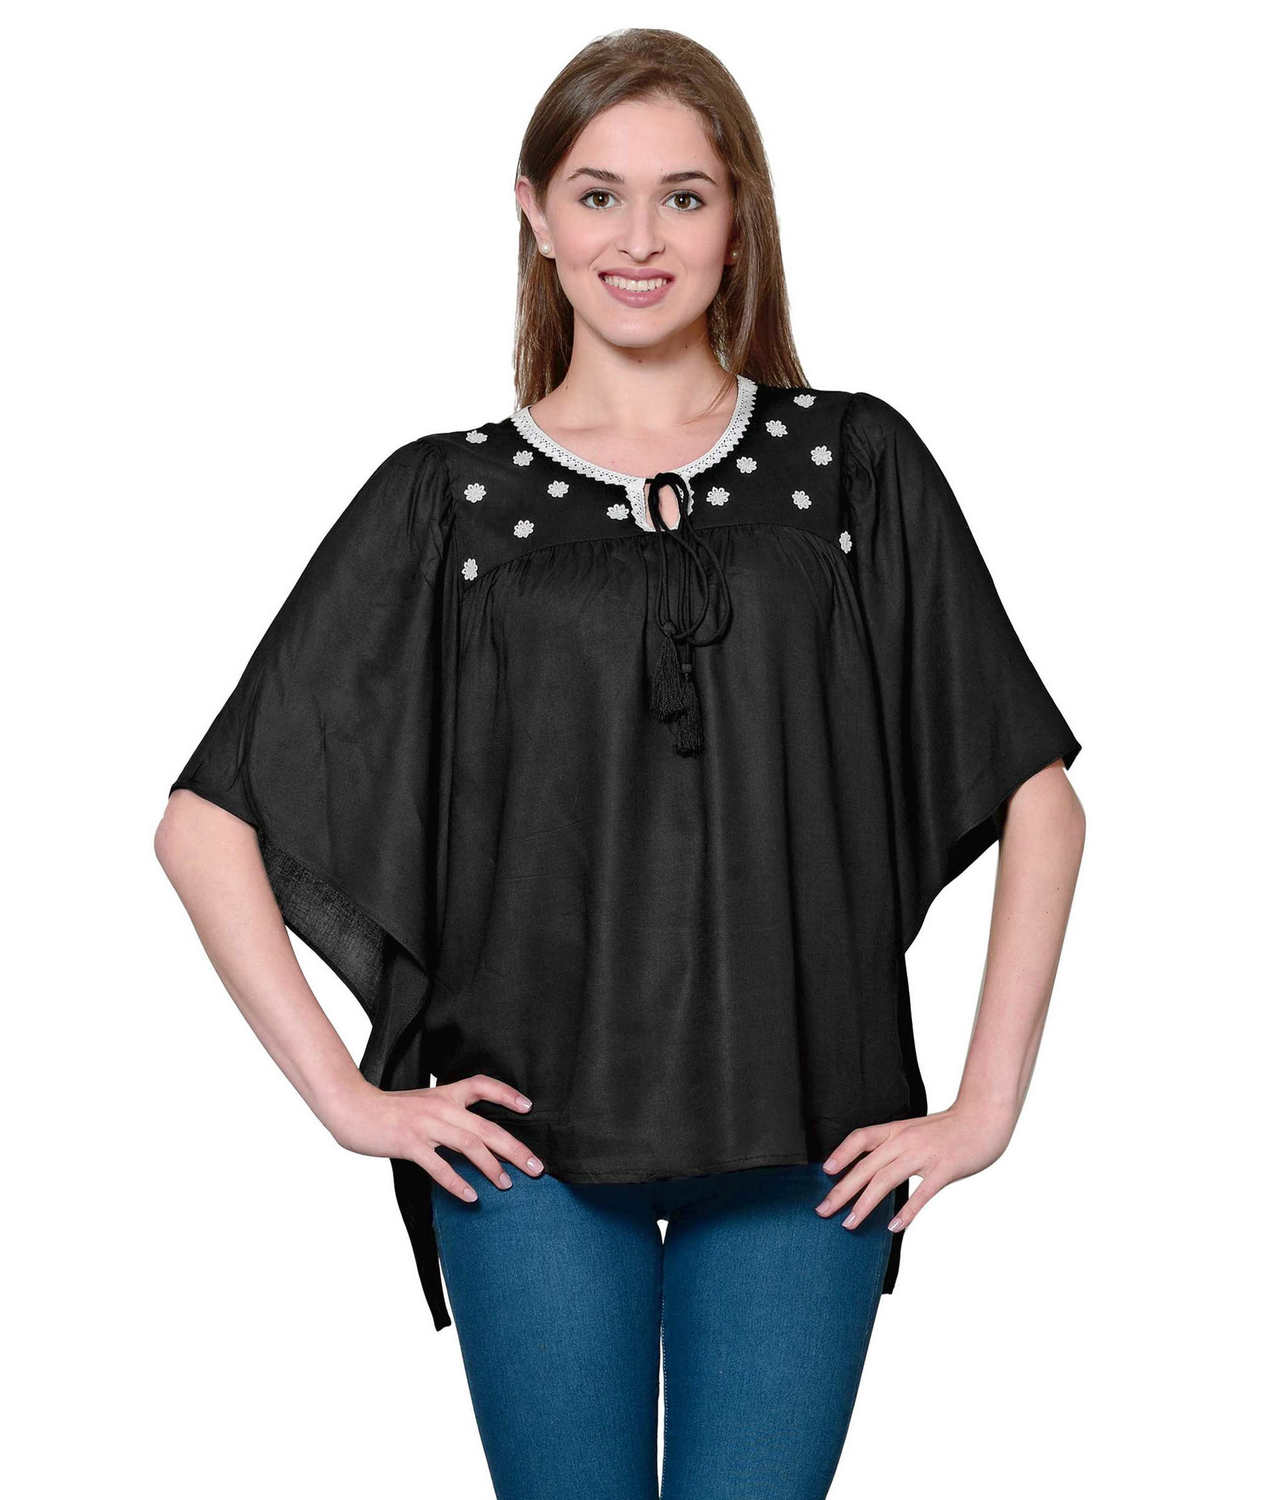 Butterfly Sleeve Empire Top in Black